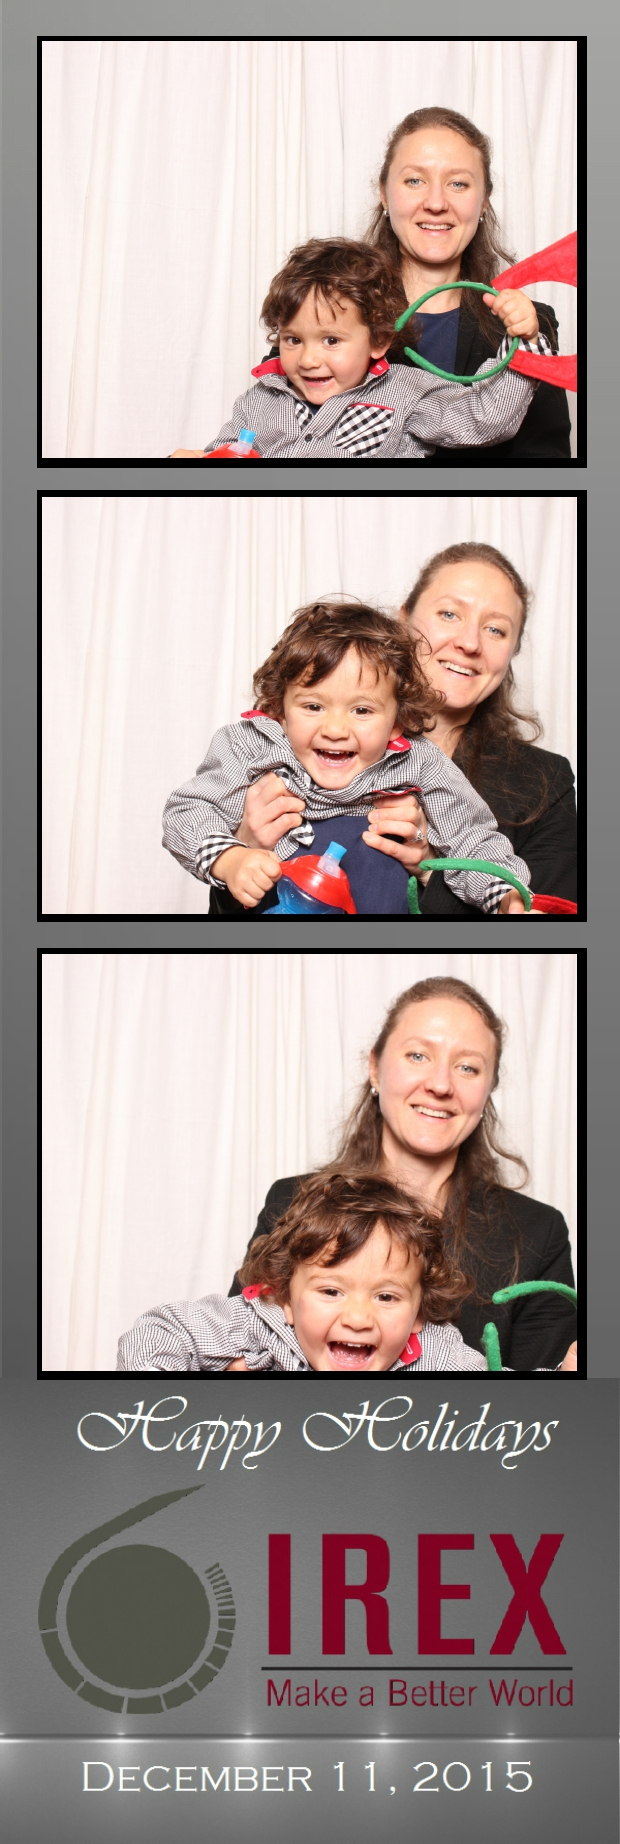 Guest House Events Photo Booth Strips IREX (23).jpg